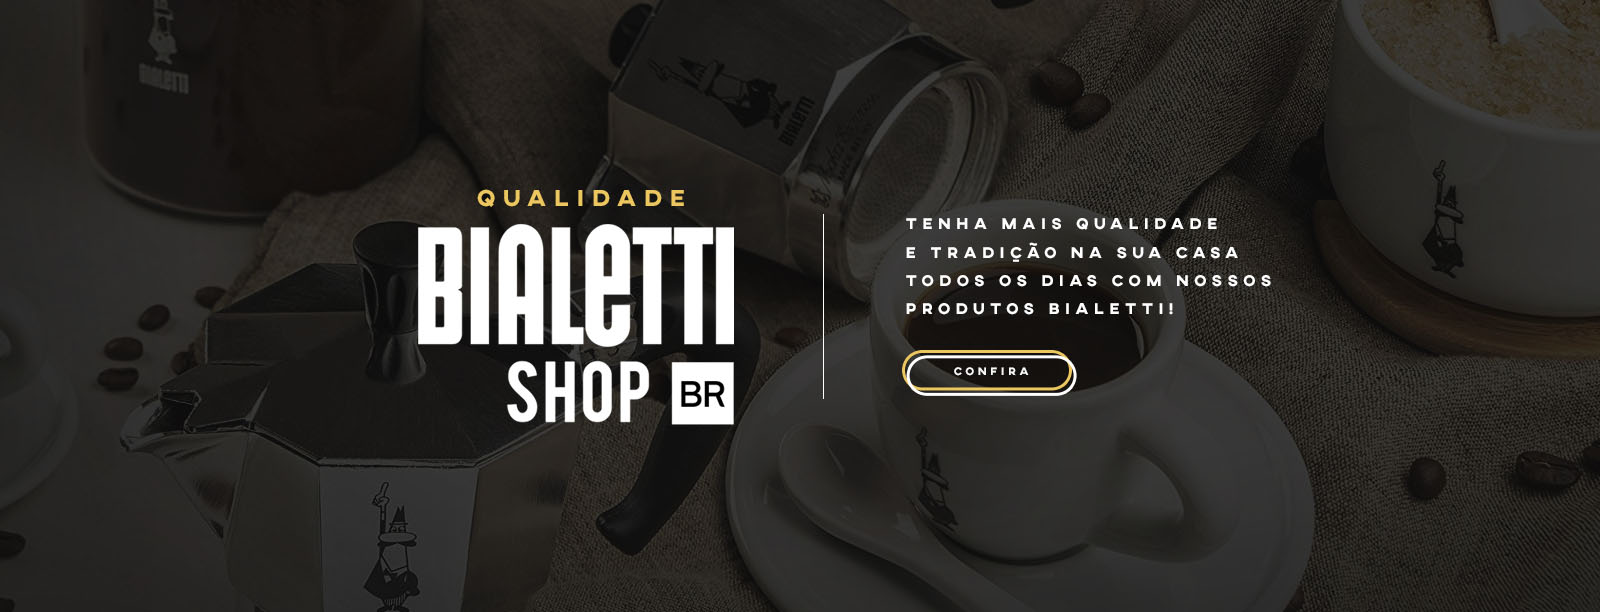 Banner - Qualidade Bialetti